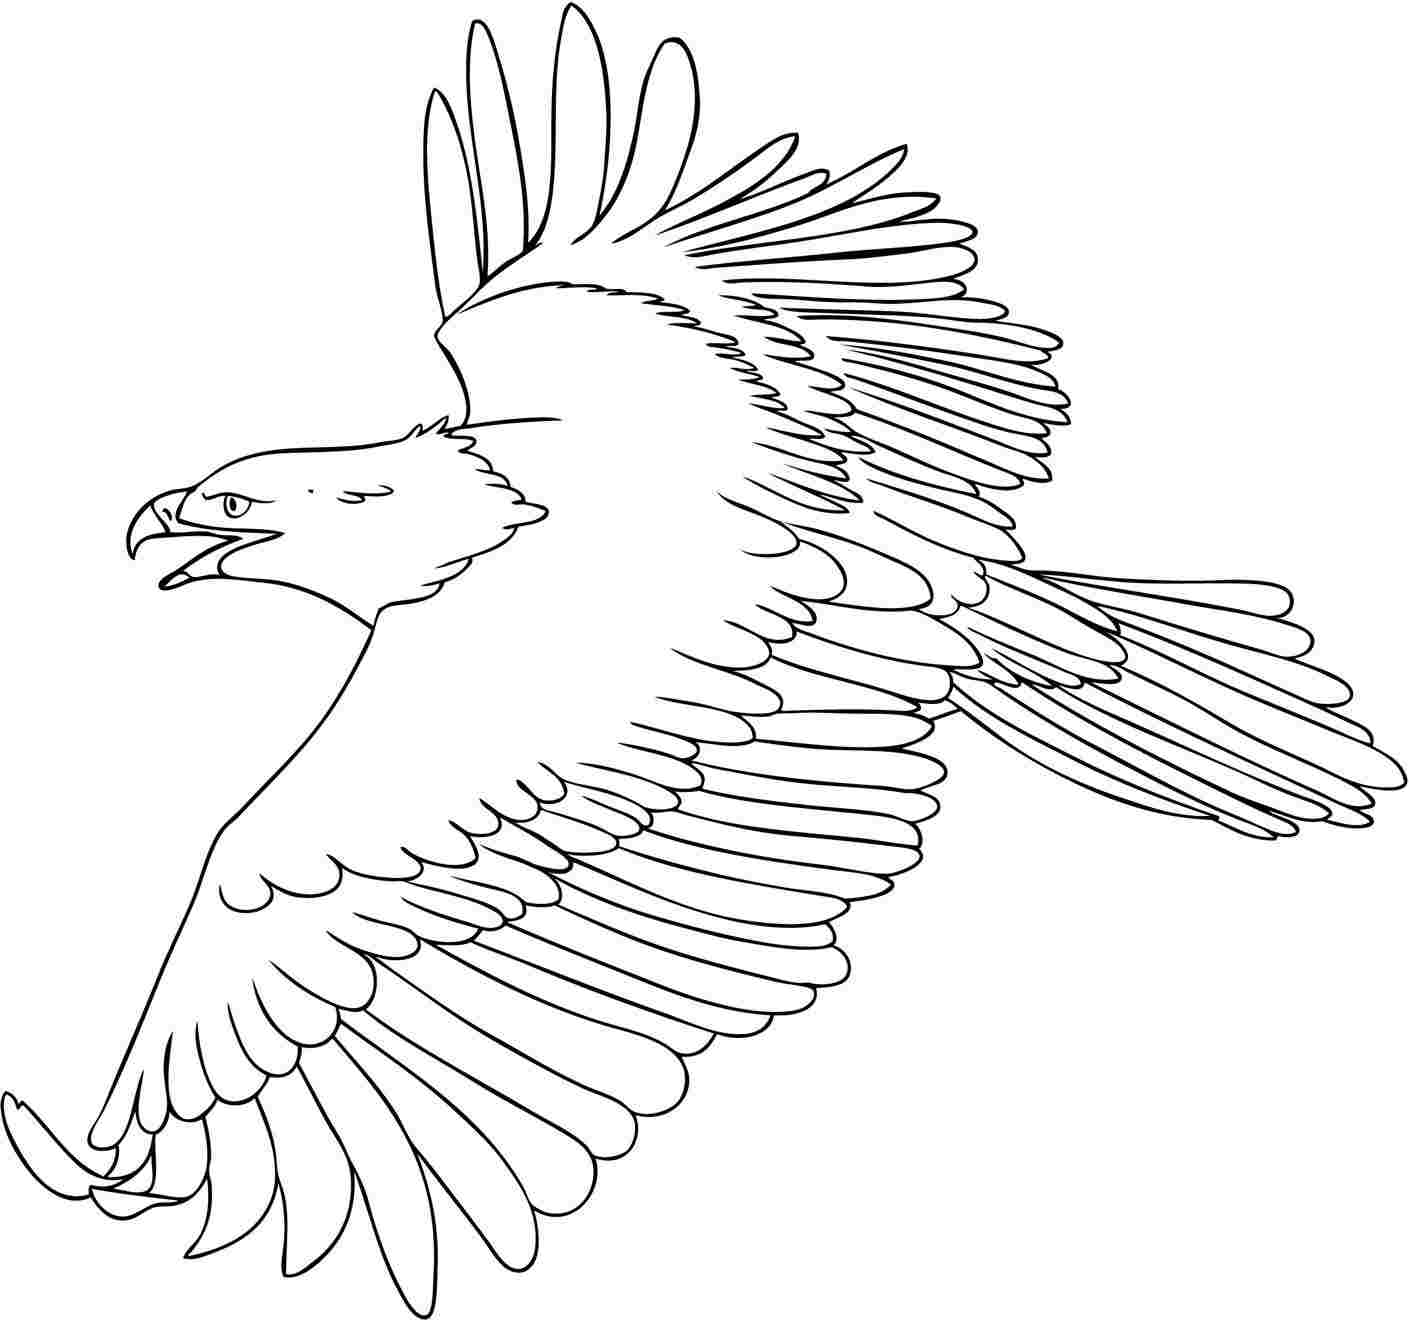 bald eagle line drawing bald eagle line drawing at getdrawings free download drawing bald line eagle